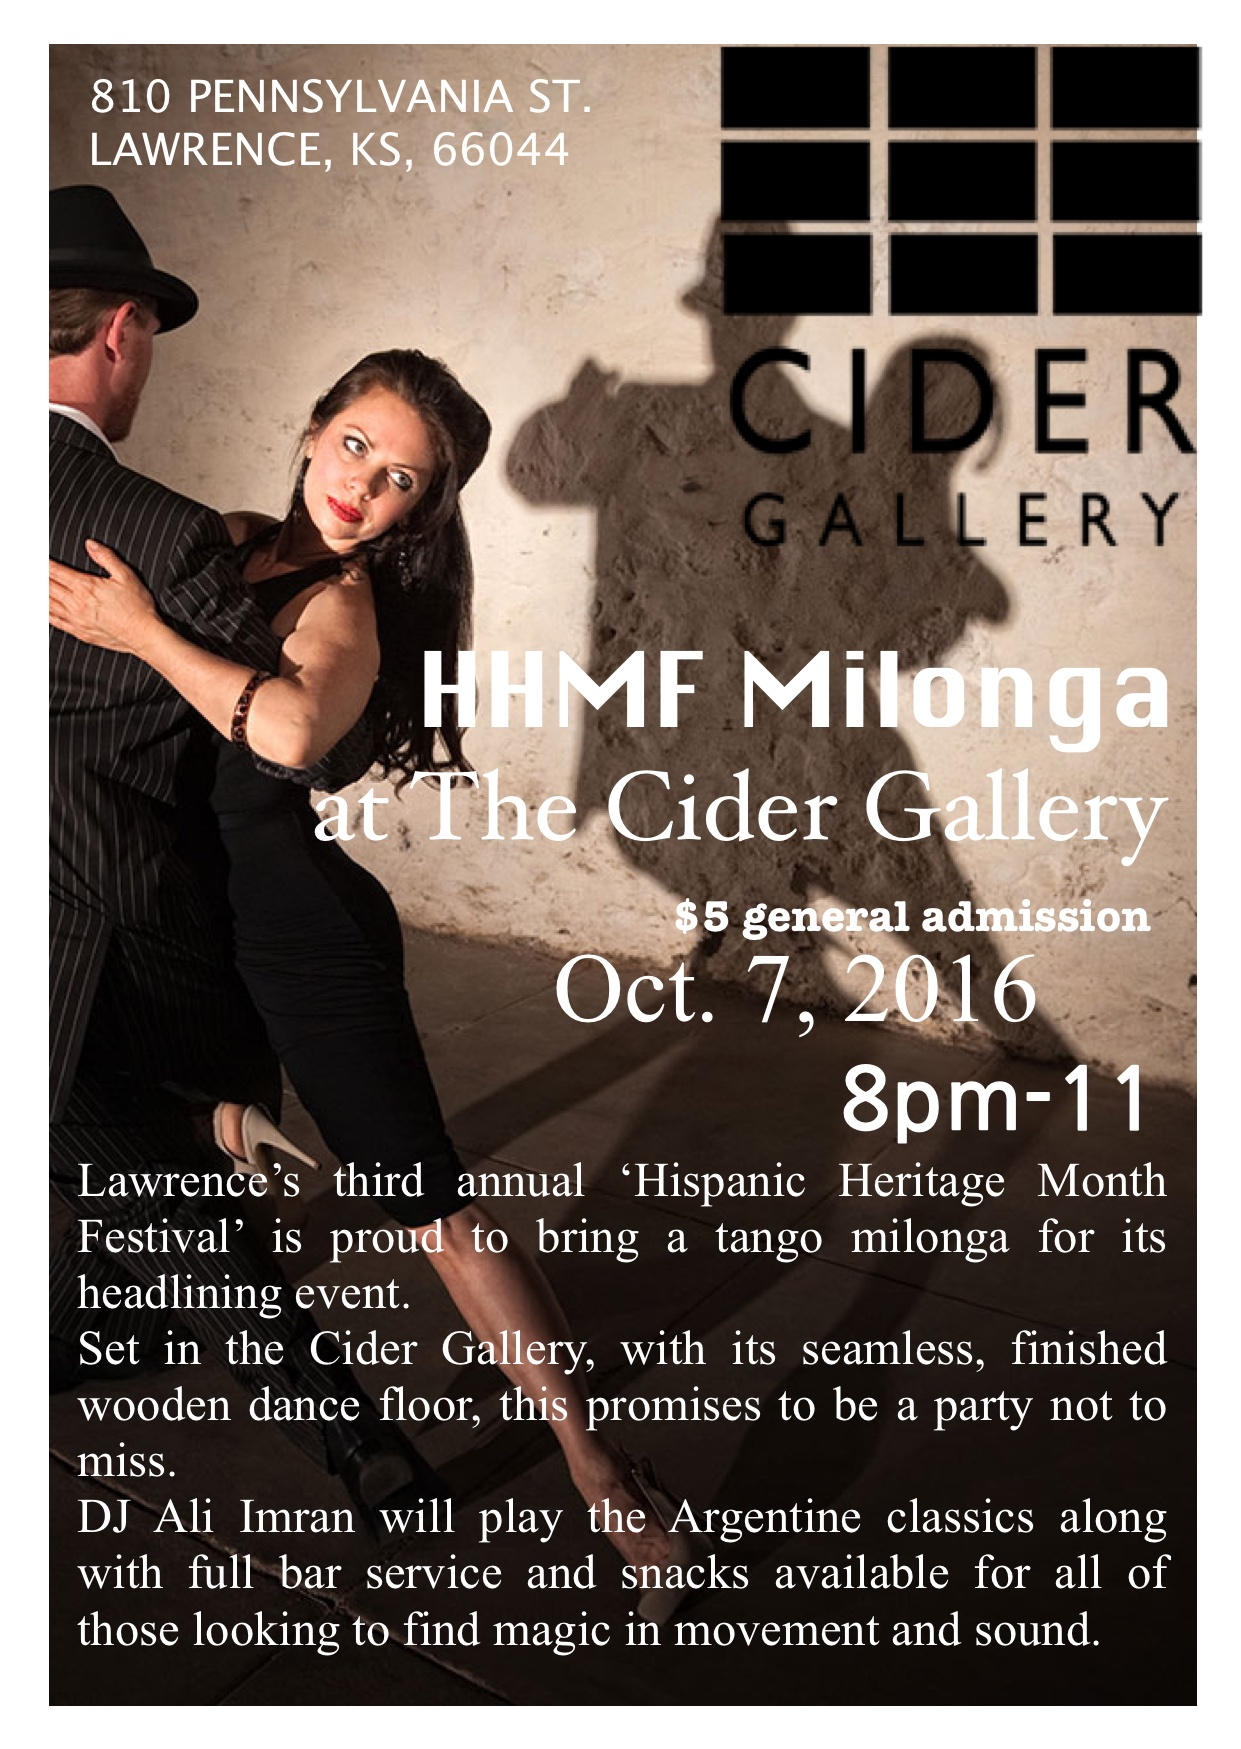 Join us at the Cider Gallery this Friday for celebration, dancing and drinks!  For more information on this events visit the event's  Facebook page